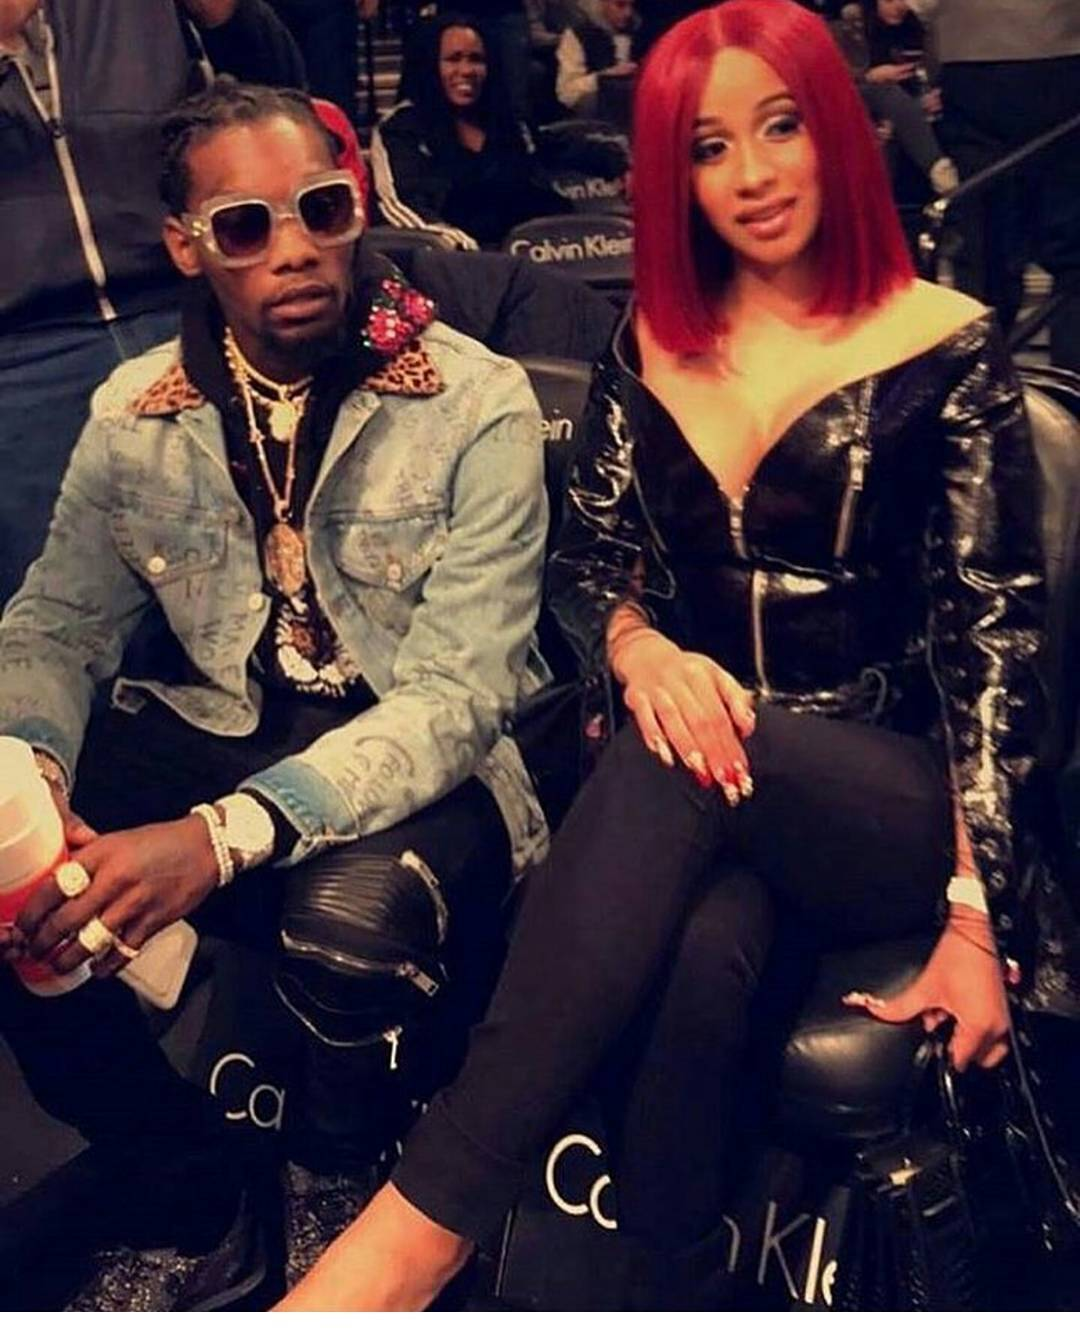 Like the look?! Migos' #Offset spotted at the Nets Game with ...